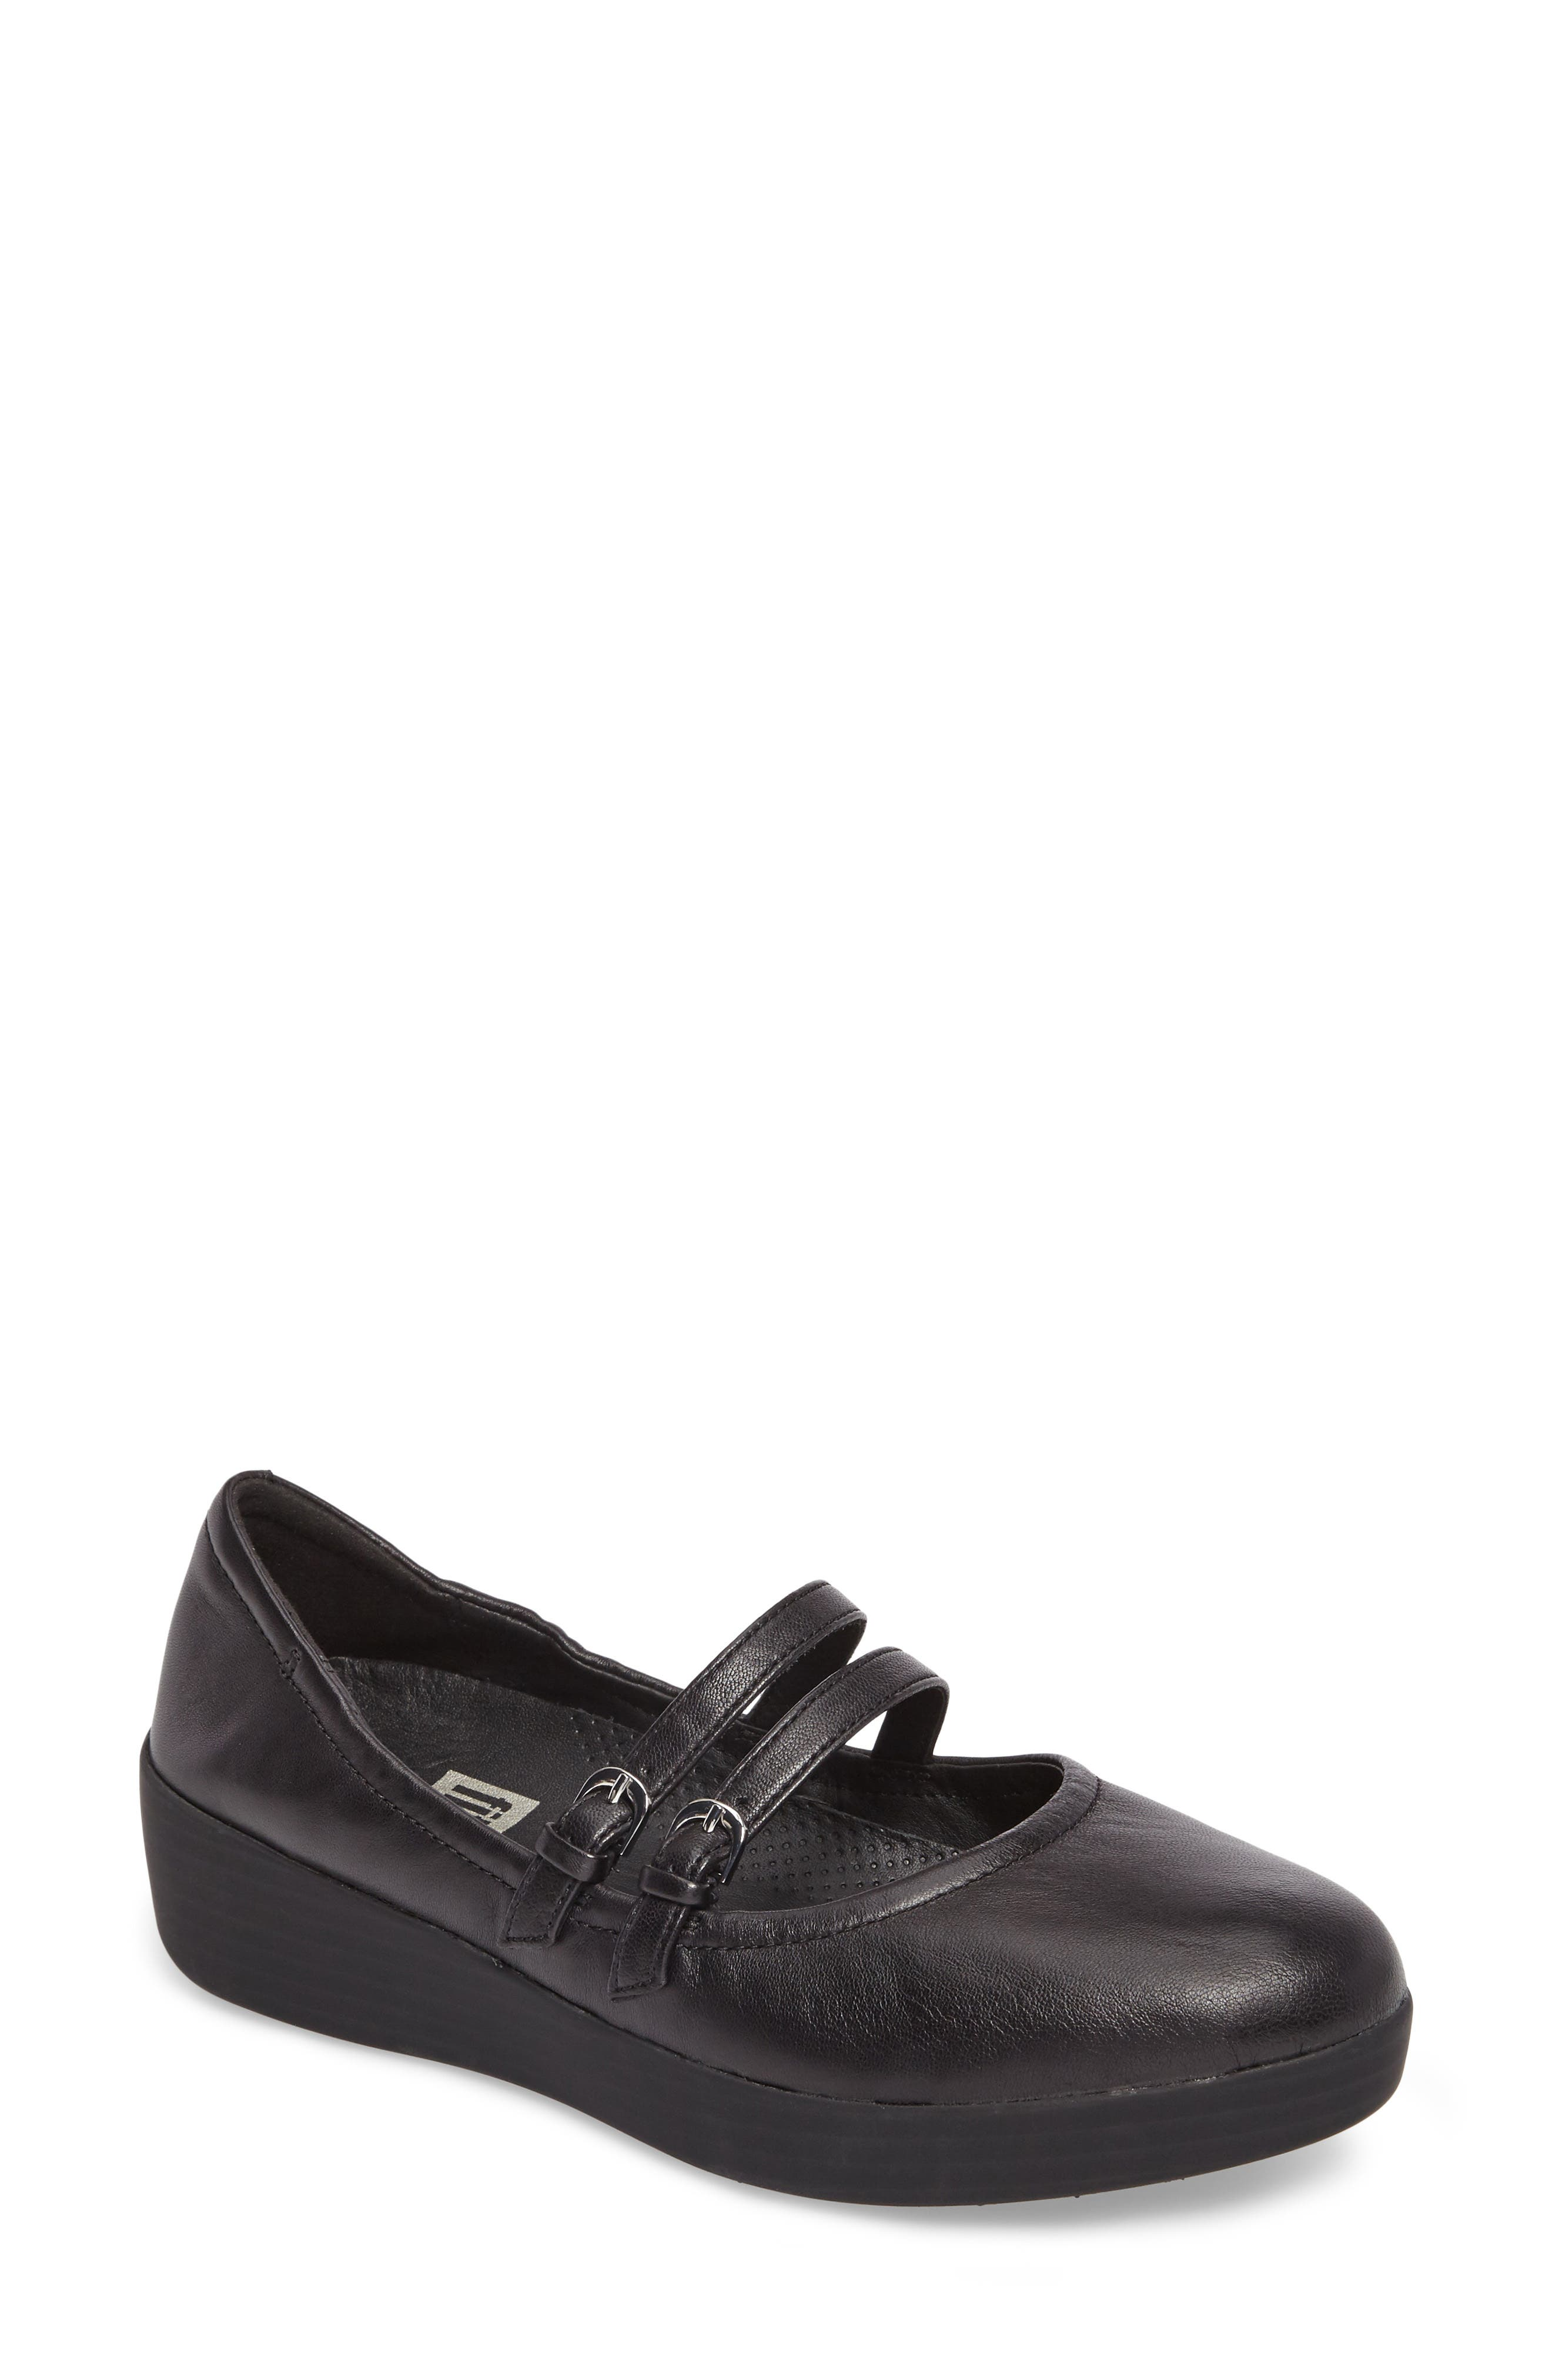 SuperBendy<sup>™</sup> Mary Jane Flat,                             Main thumbnail 1, color,                             Black Leather